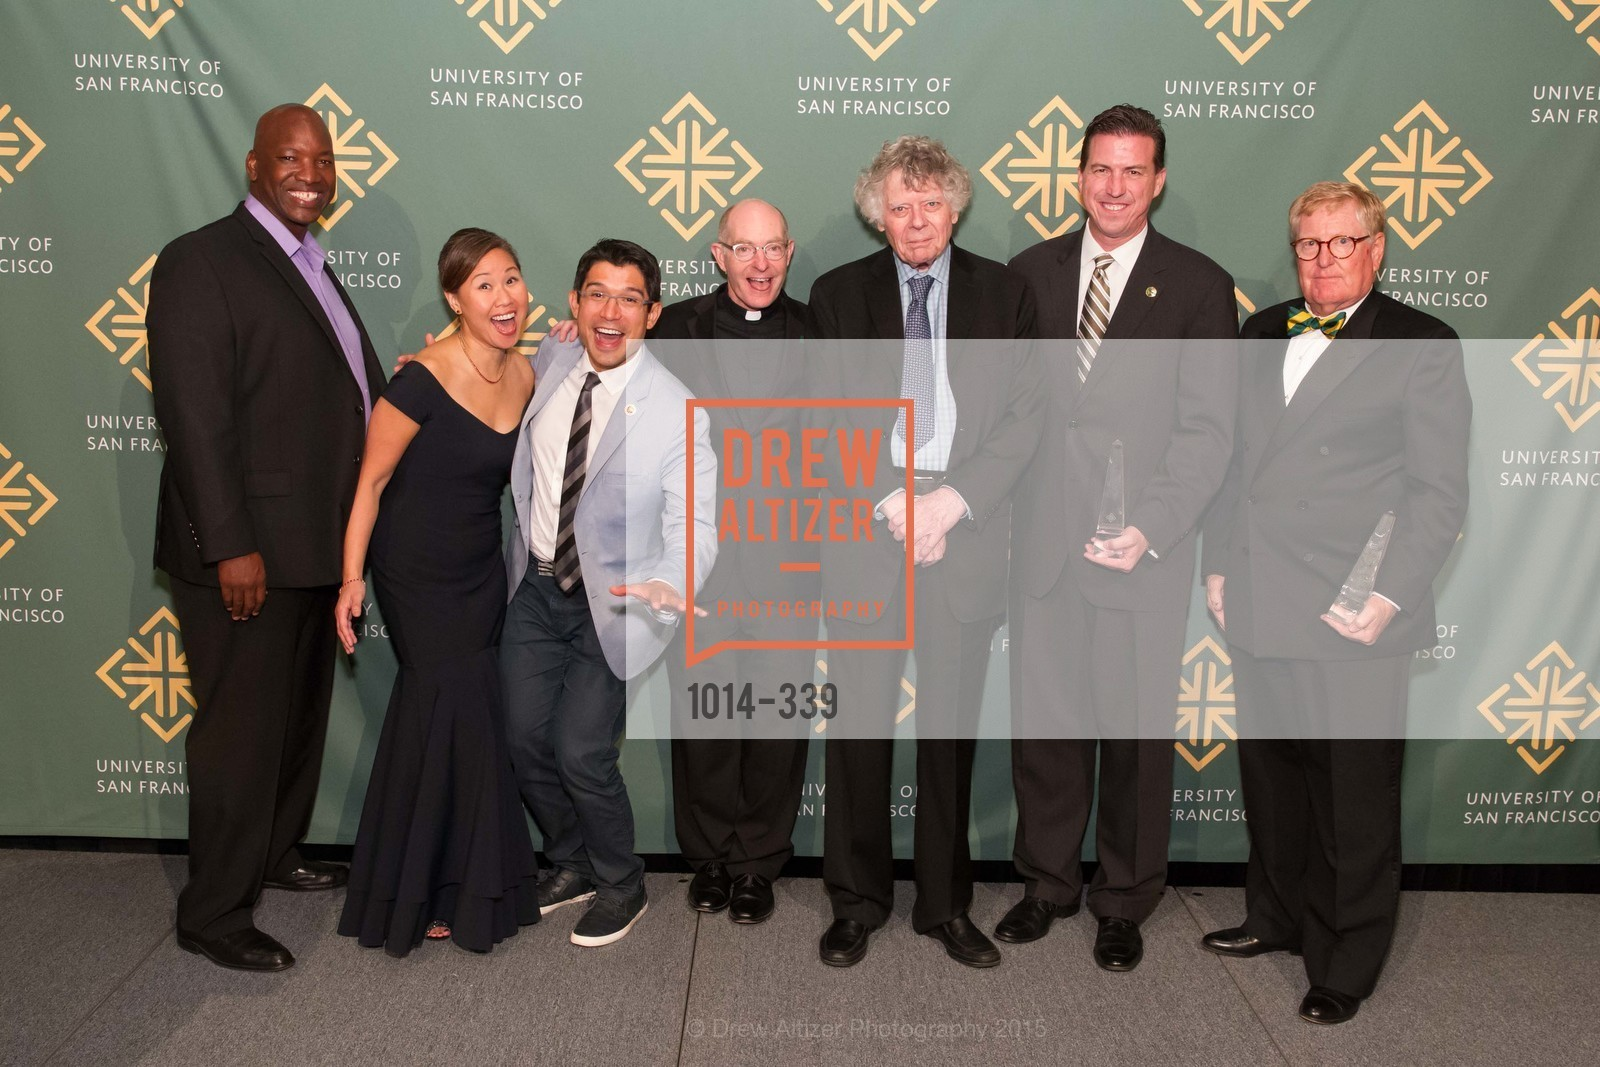 Aaron Horn, Doris Cheng, Carlos Menchaca, Paul Fitzgerald, Gordon Getty, Kevin Mullin, William Hollingsworth, University of San Francisco Alumni Awards Gala 2015, University of San Francisco, October 2nd, 2015,Drew Altizer, Drew Altizer Photography, full-service agency, private events, San Francisco photographer, photographer california